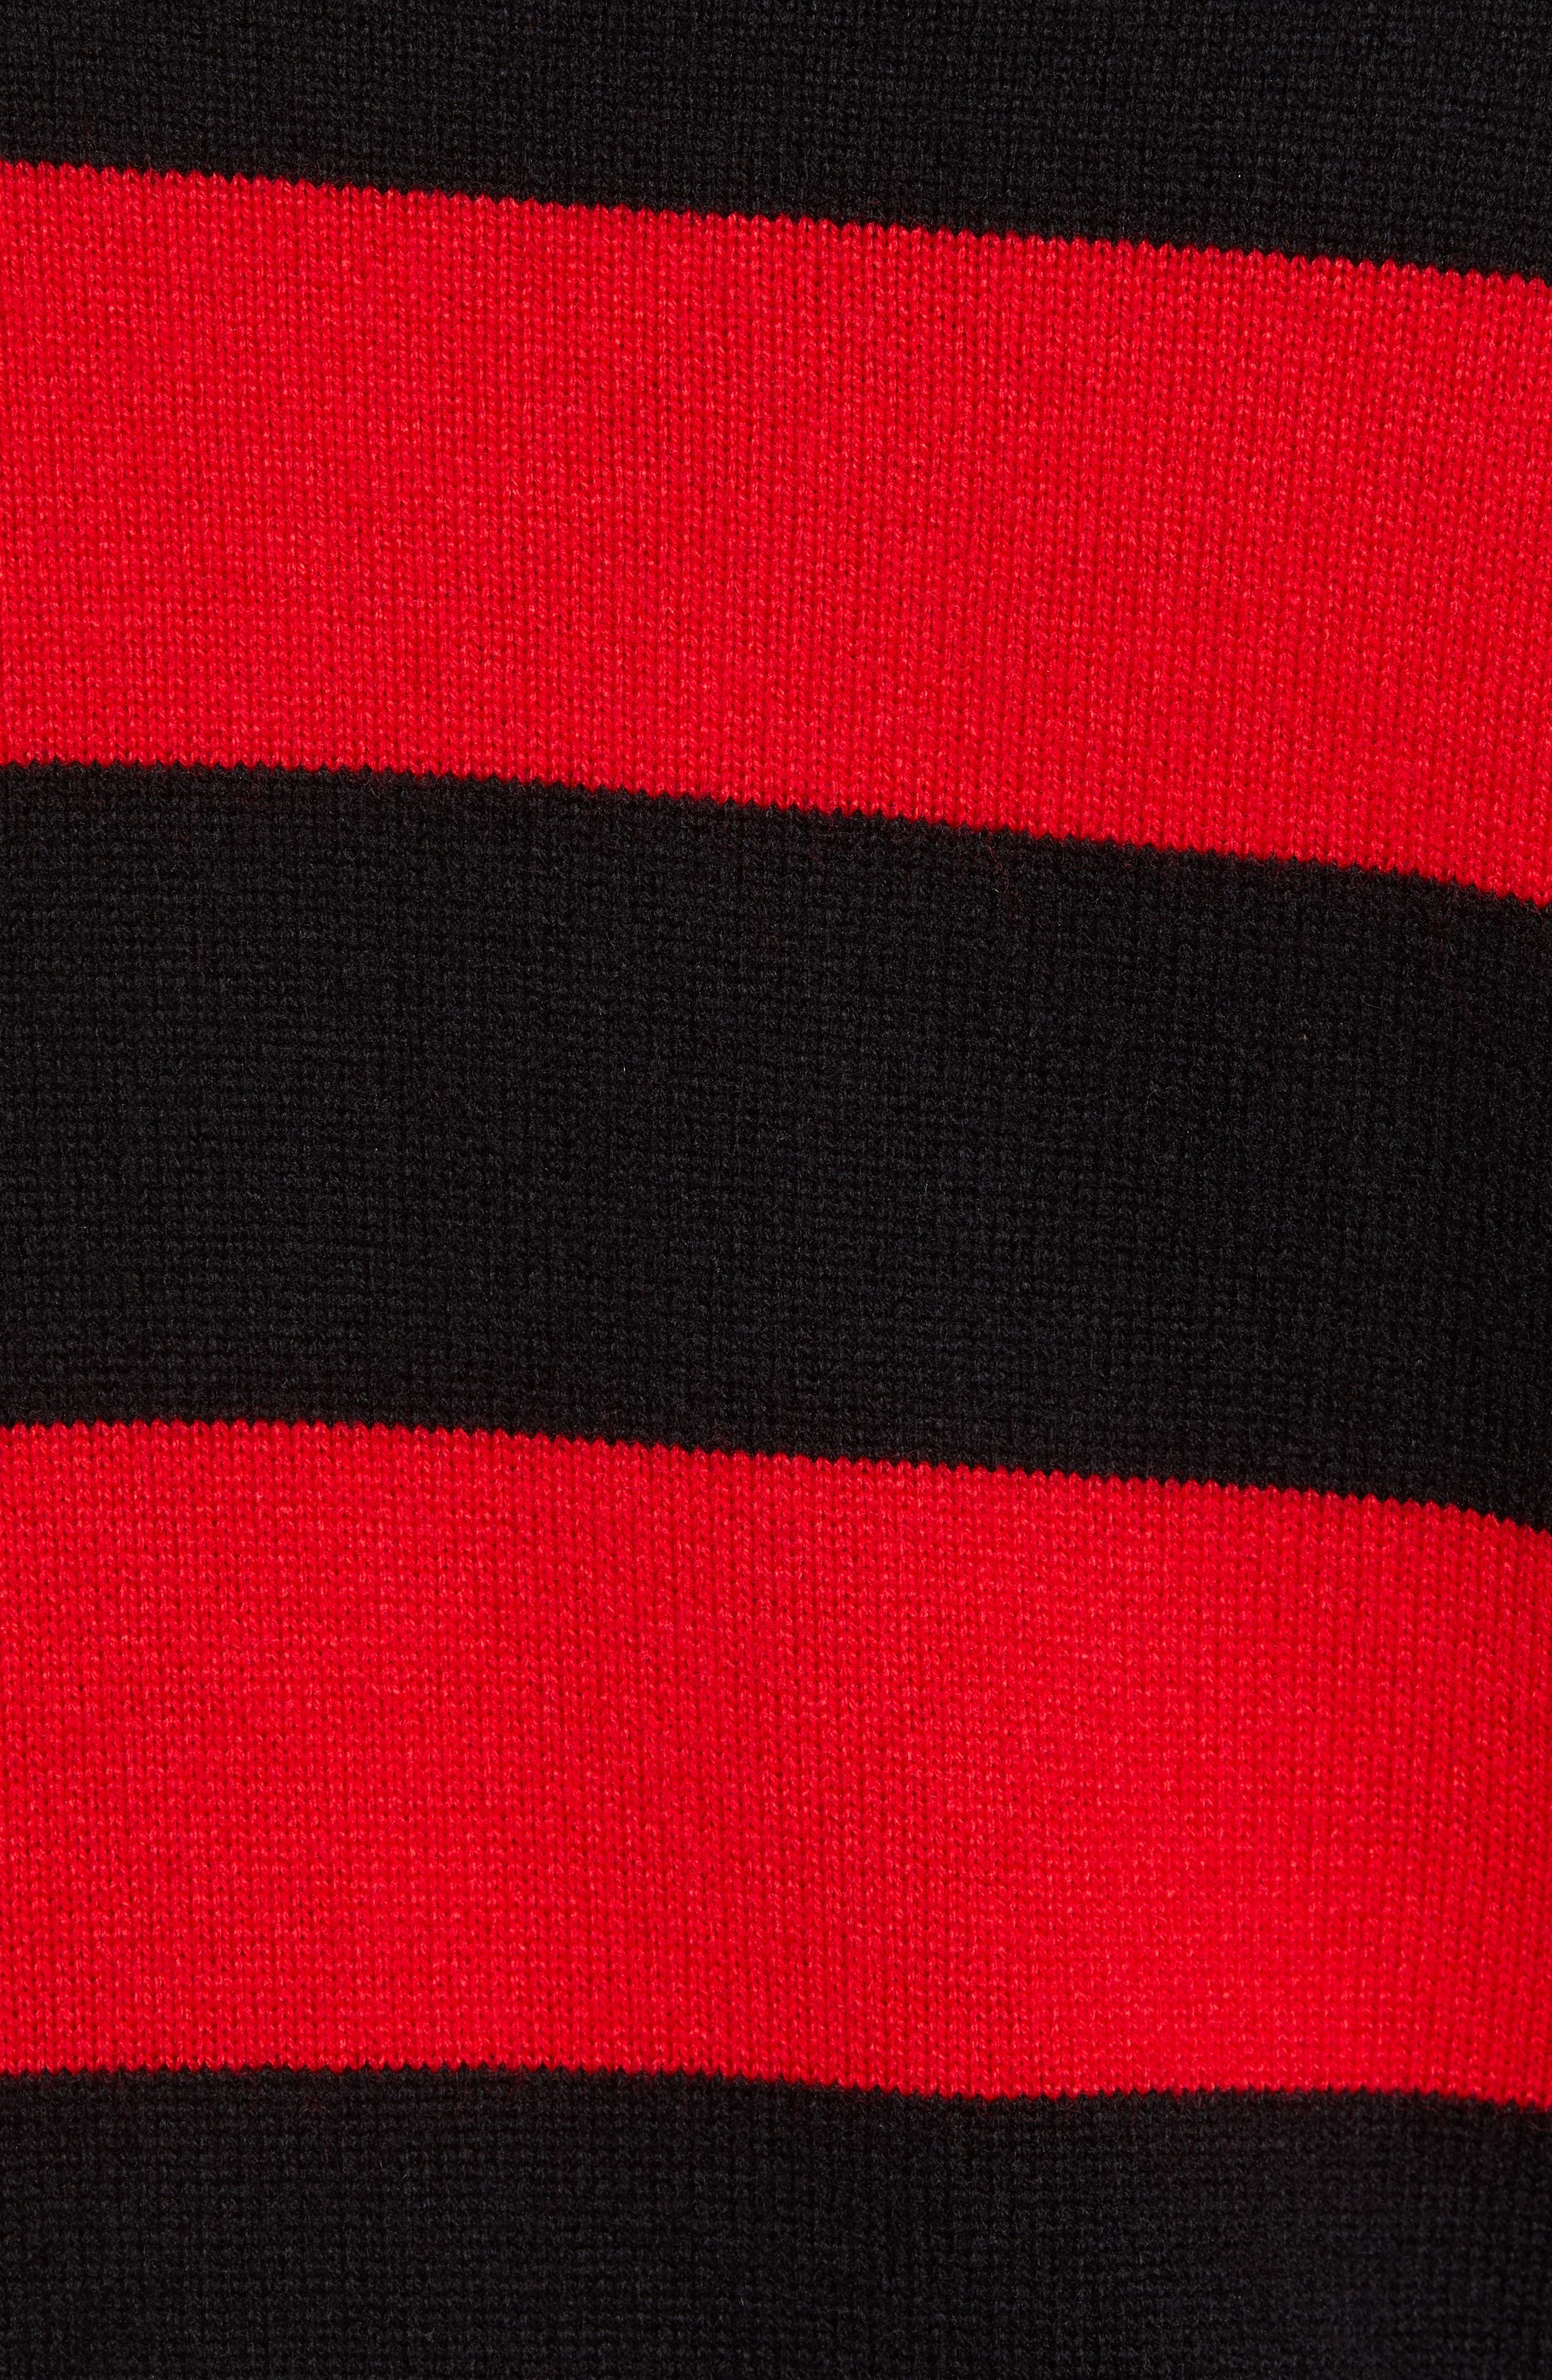 Shredded Stripe Sweater,                             Alternate thumbnail 5, color,                             RED/ BLACK